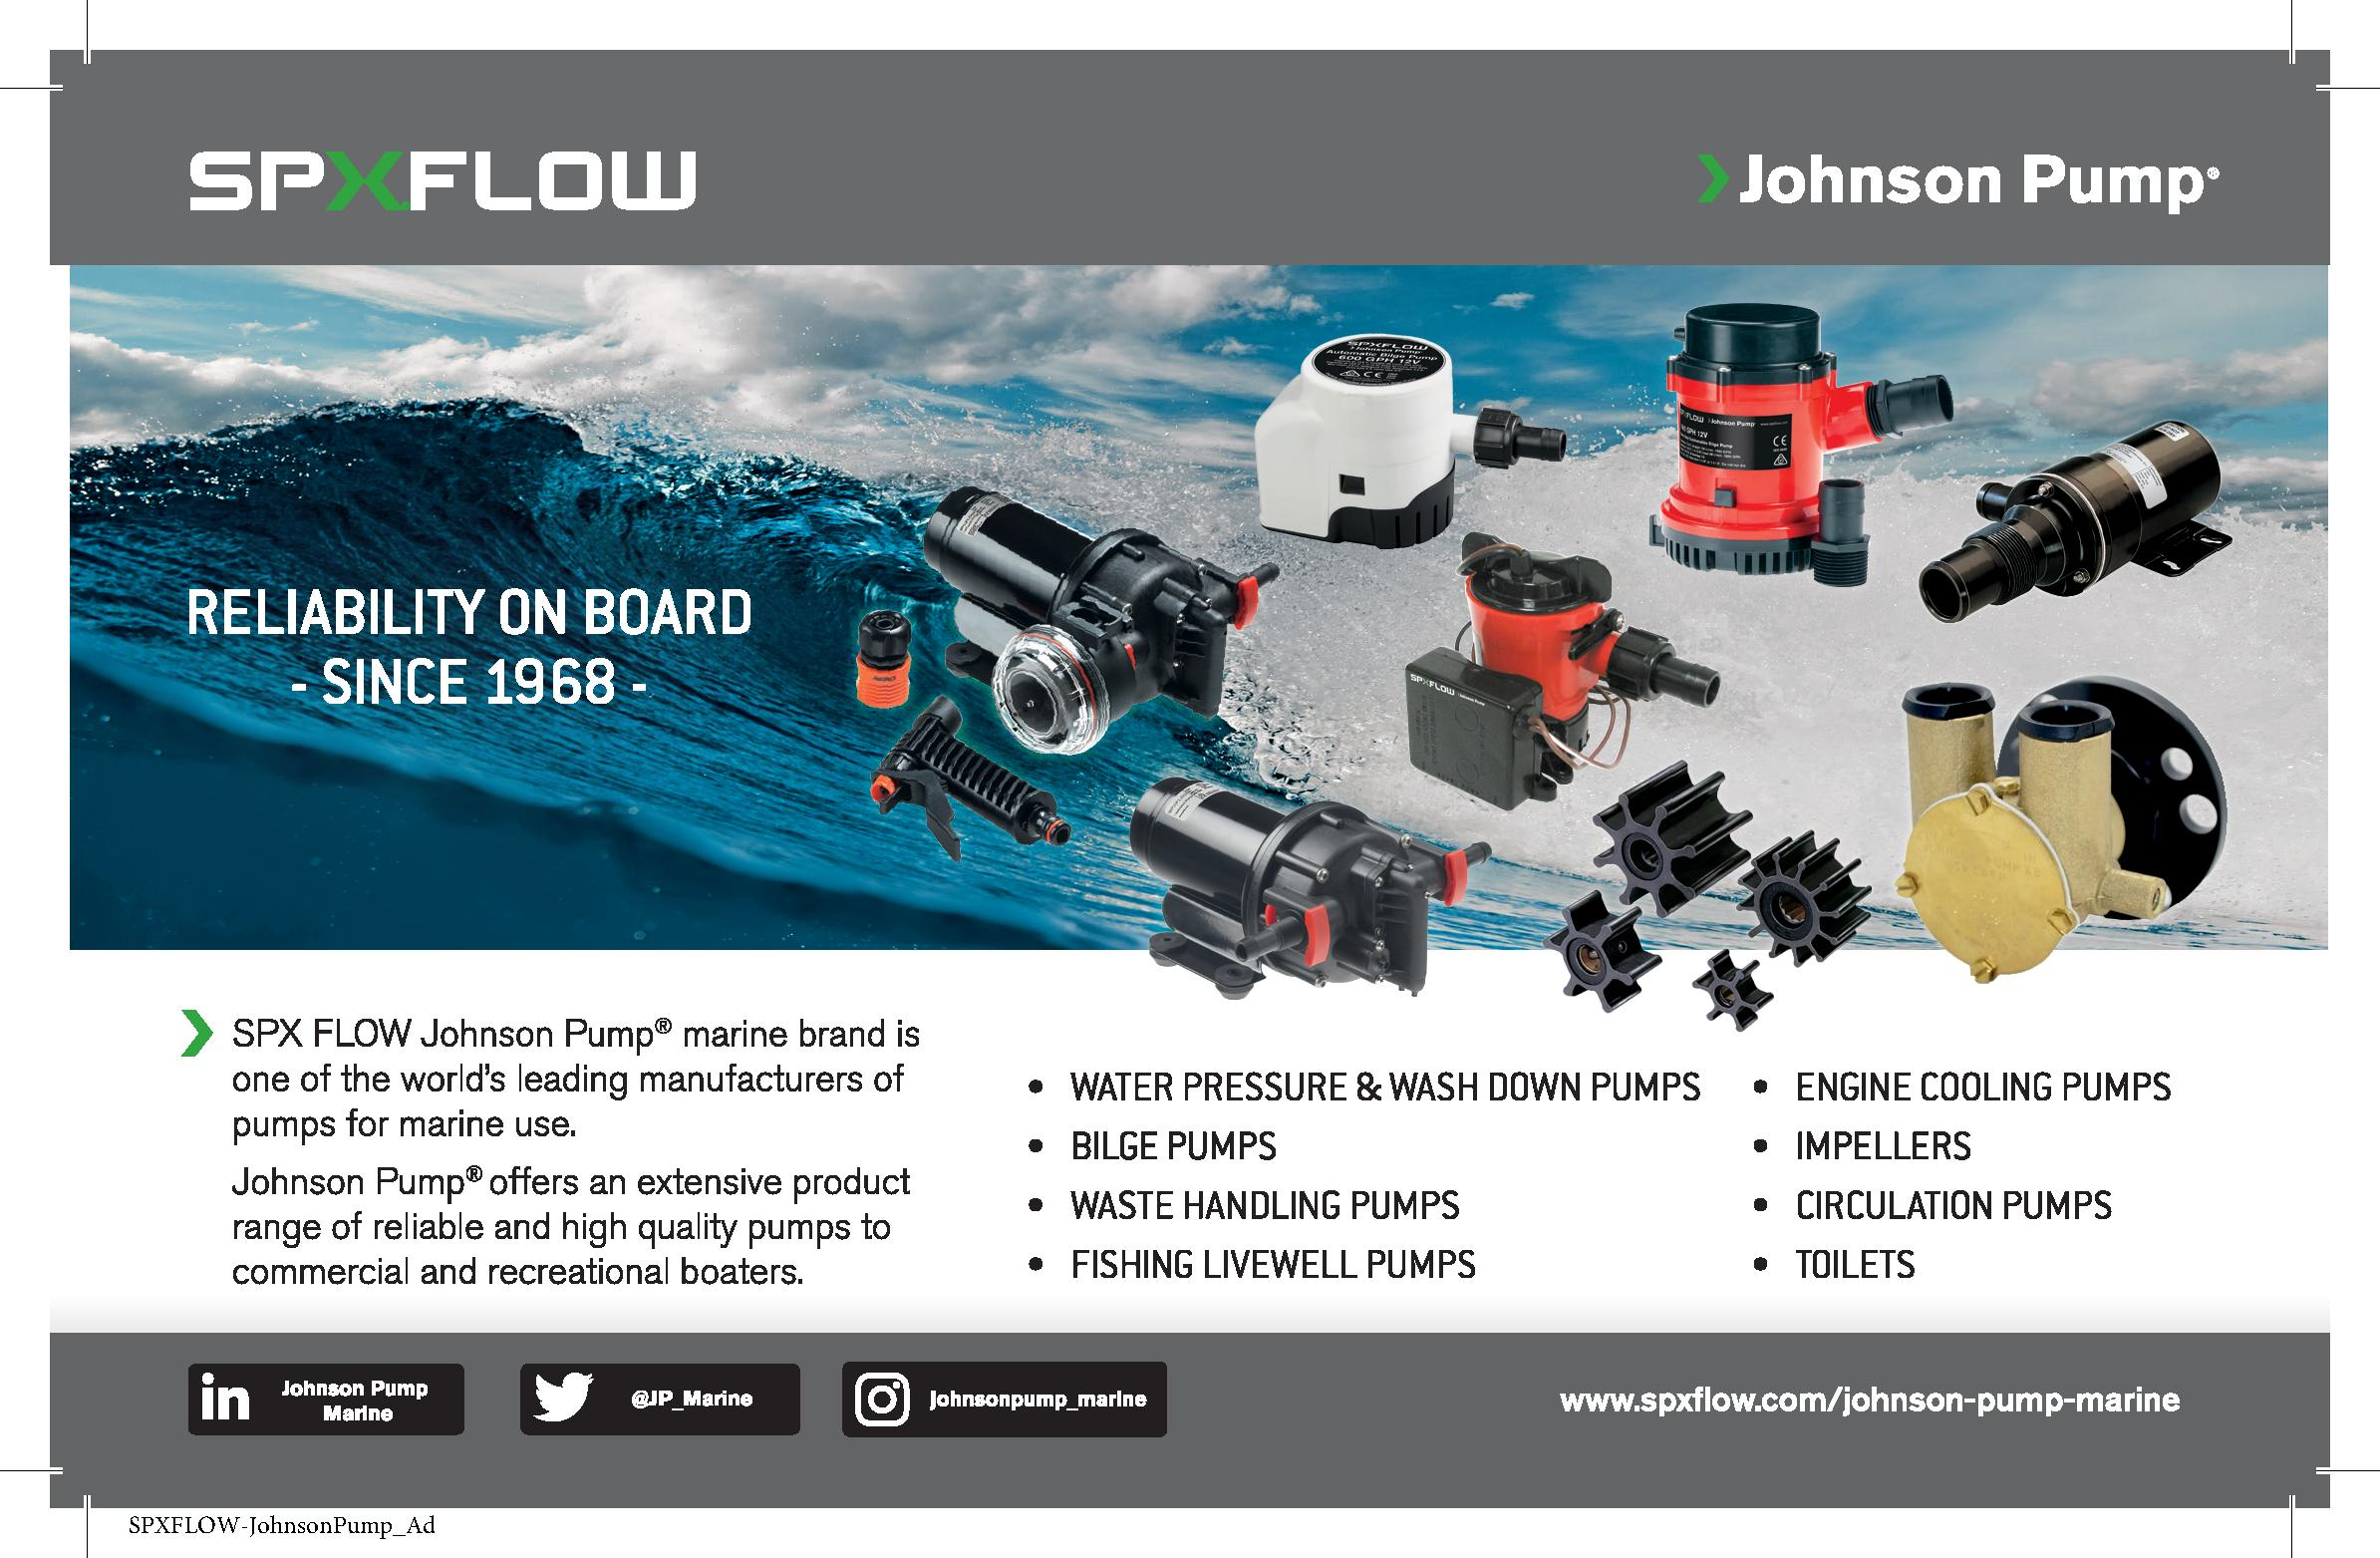 Johnson Pump - SPXFLOW